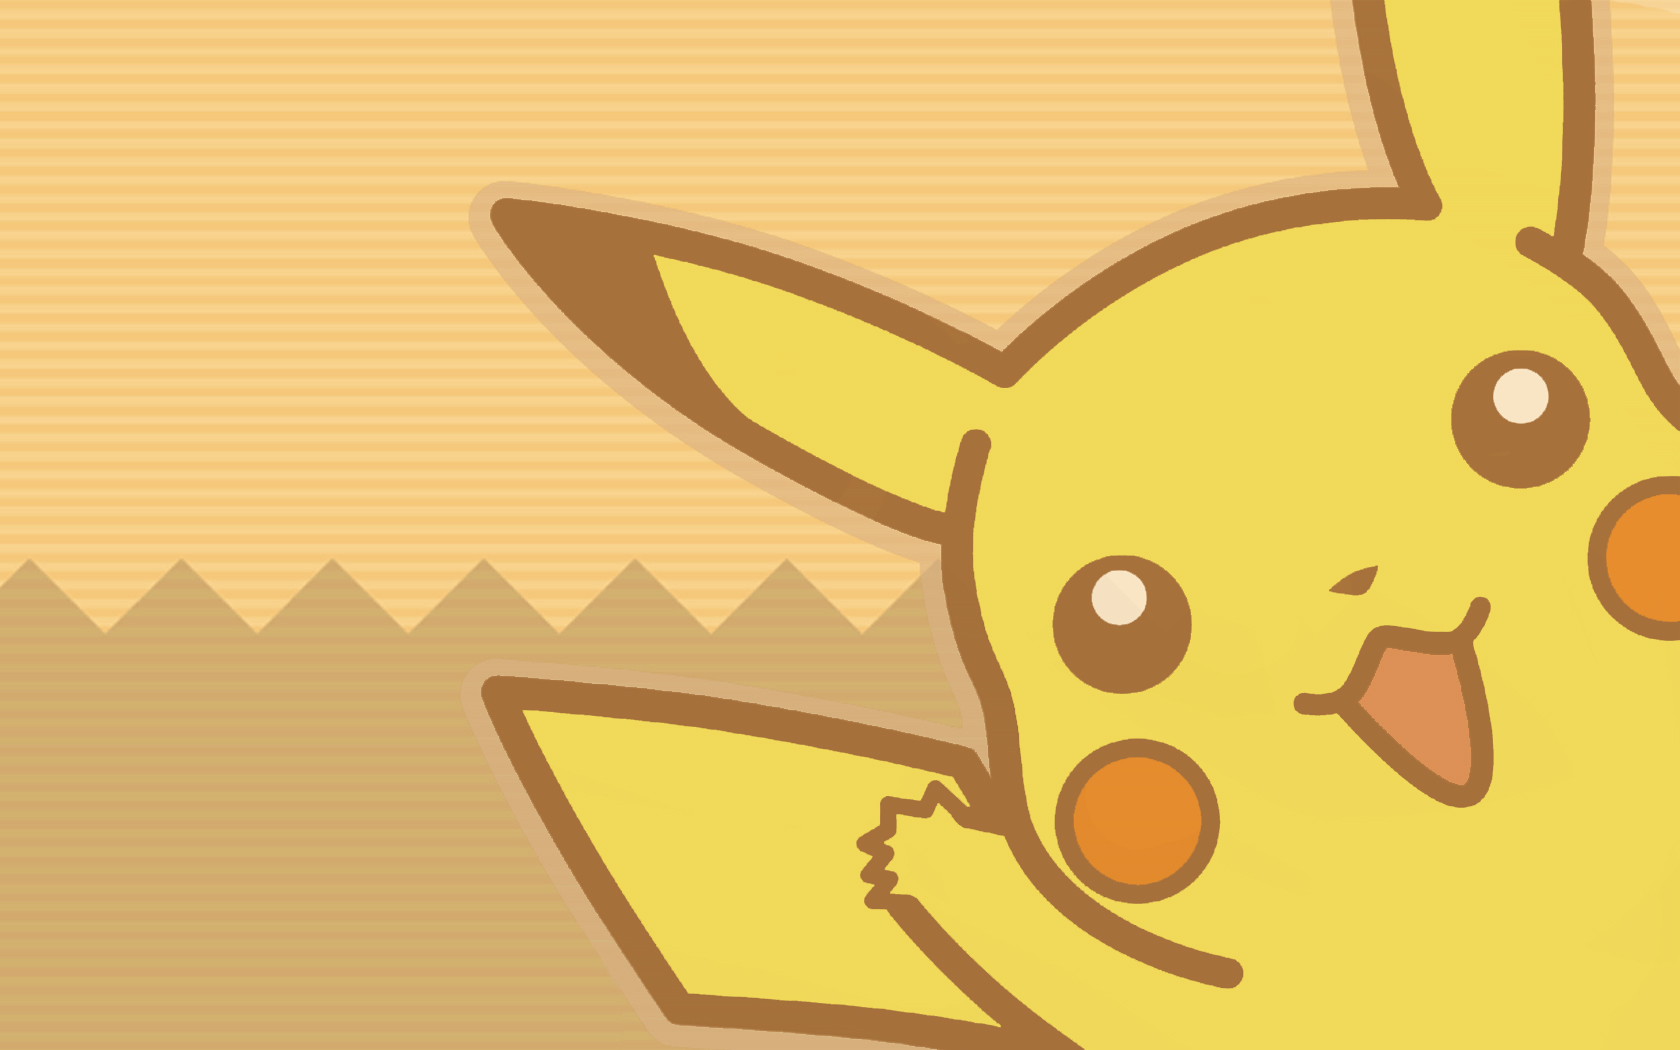 Pokemon Pikachu Wallpaper 1680x1050 Pokemon Pikachu Vector 1680x1050